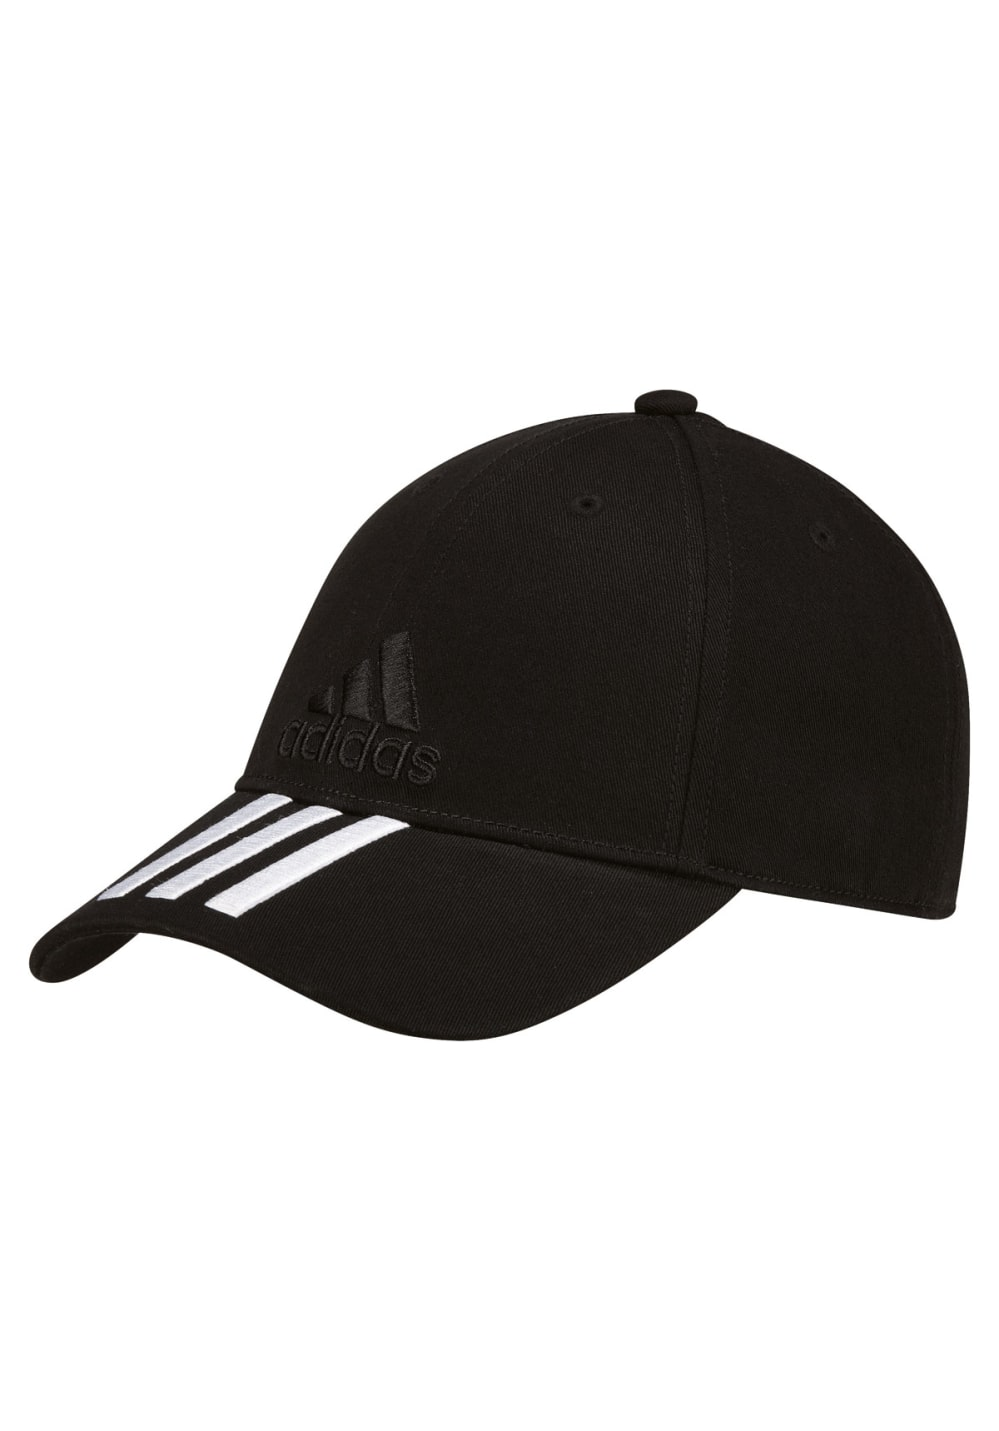 Next. -50%. This product is currently out of stock. adidas. 6 Panel Classic  Cap 3 Stripes Cotton - Headdress fd56c623fba4